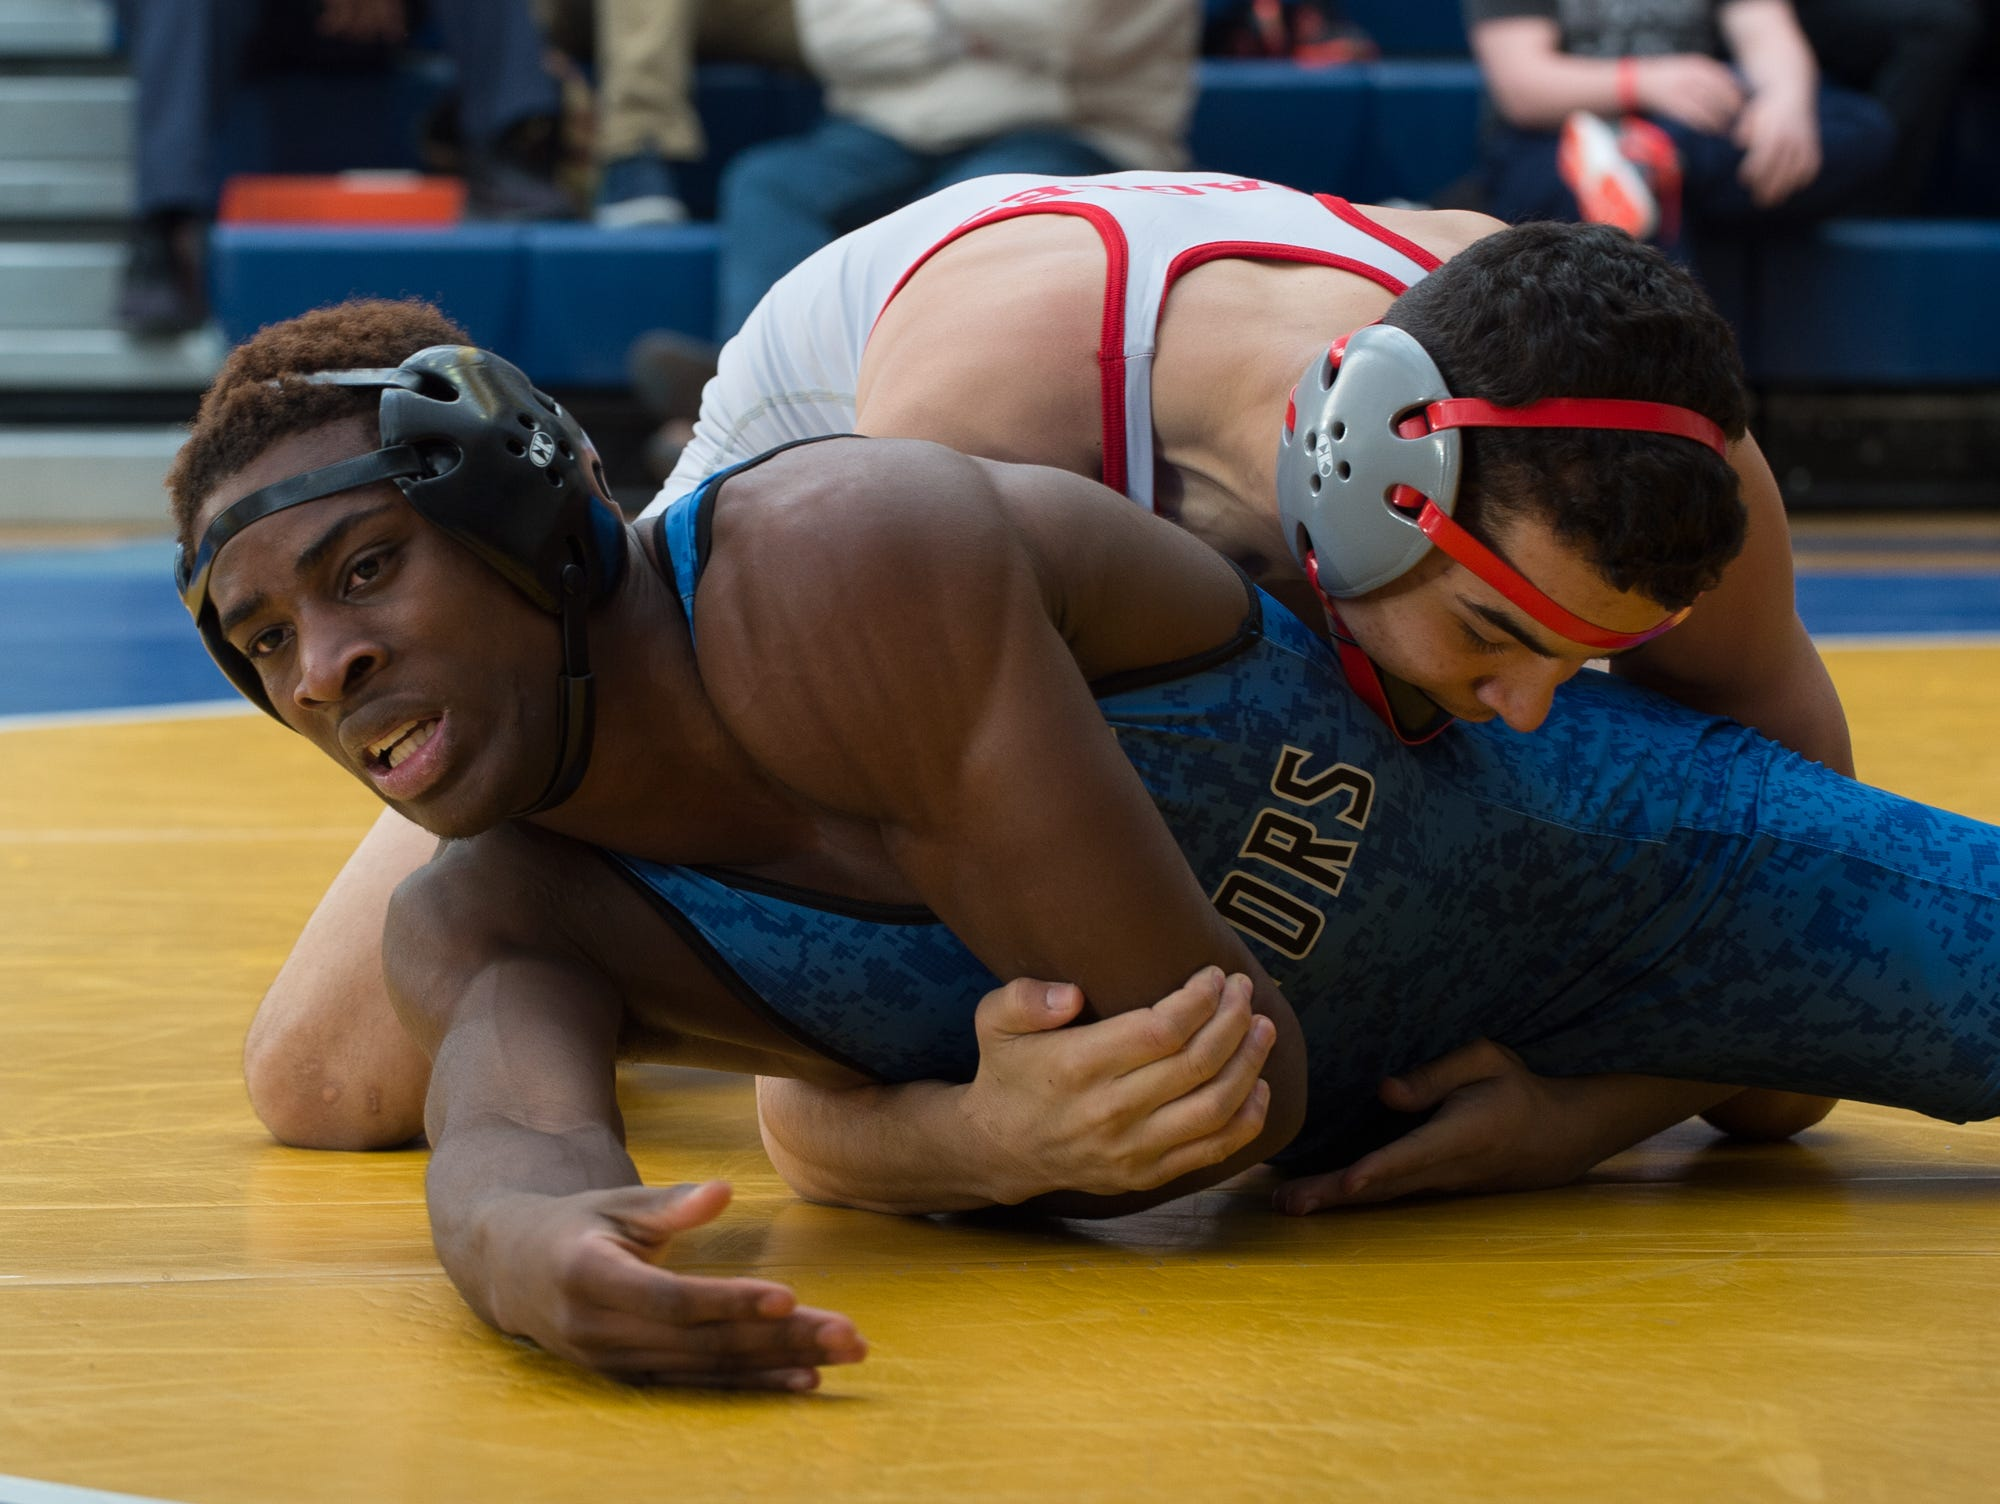 Smyrna's Nate Bryant (top) and Dover's Divine Watkins wrestle in the 152 pound championship match at the Henlopen Conference wrestling tournament at Sussex Central High School.